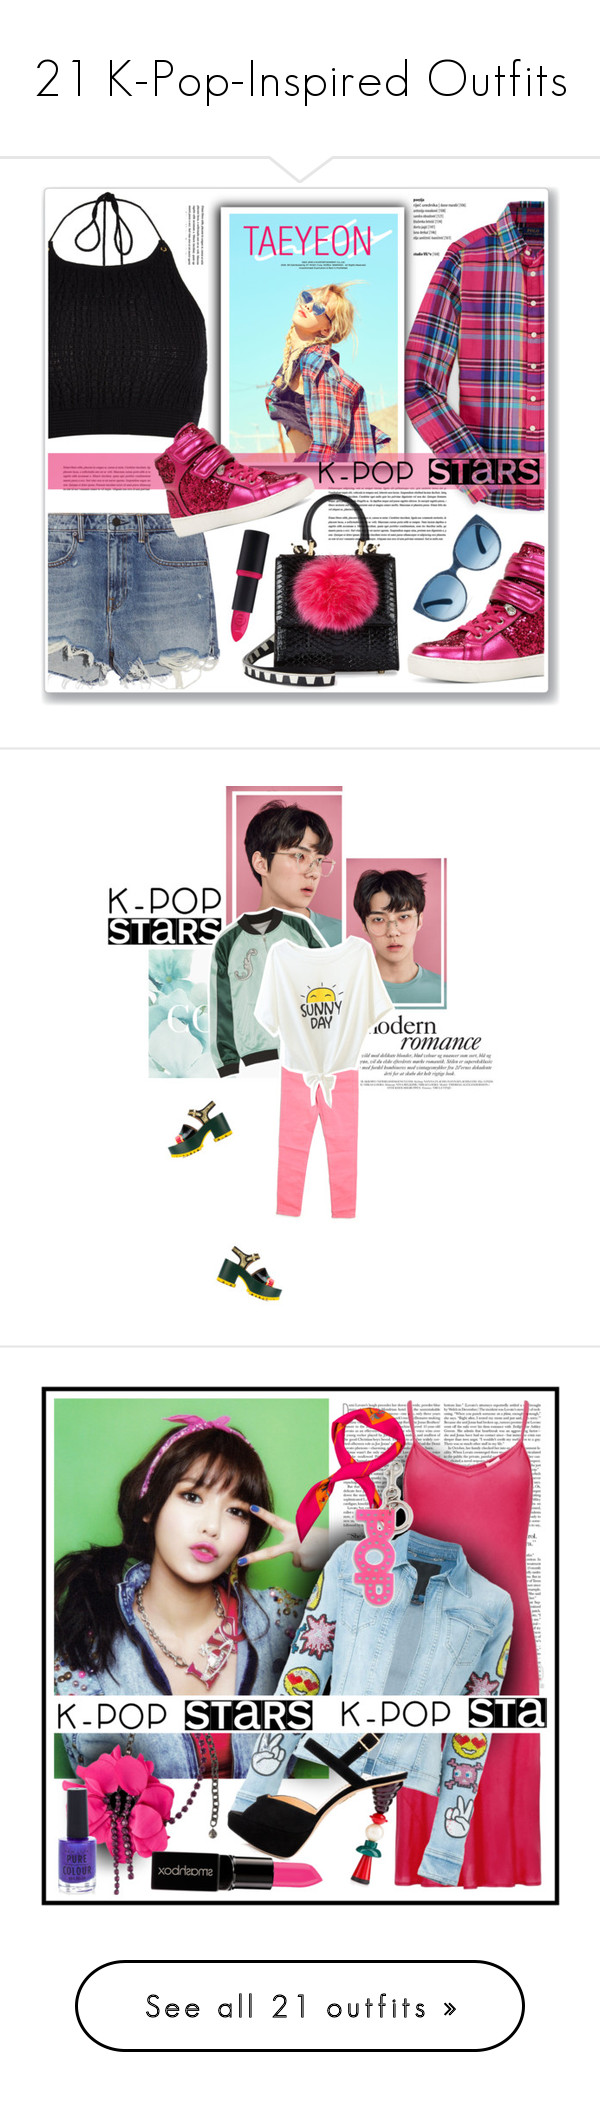 """21 K-Pop-Inspired Outfits"" by polyvore-editorial ❤ liked on Polyvore featuring kpop, River Island, Alexander Wang, ALDO, Les Petits Joueurs, Essence, contestentry, polyvoreeditorial, polyvorecontest and Samsung"